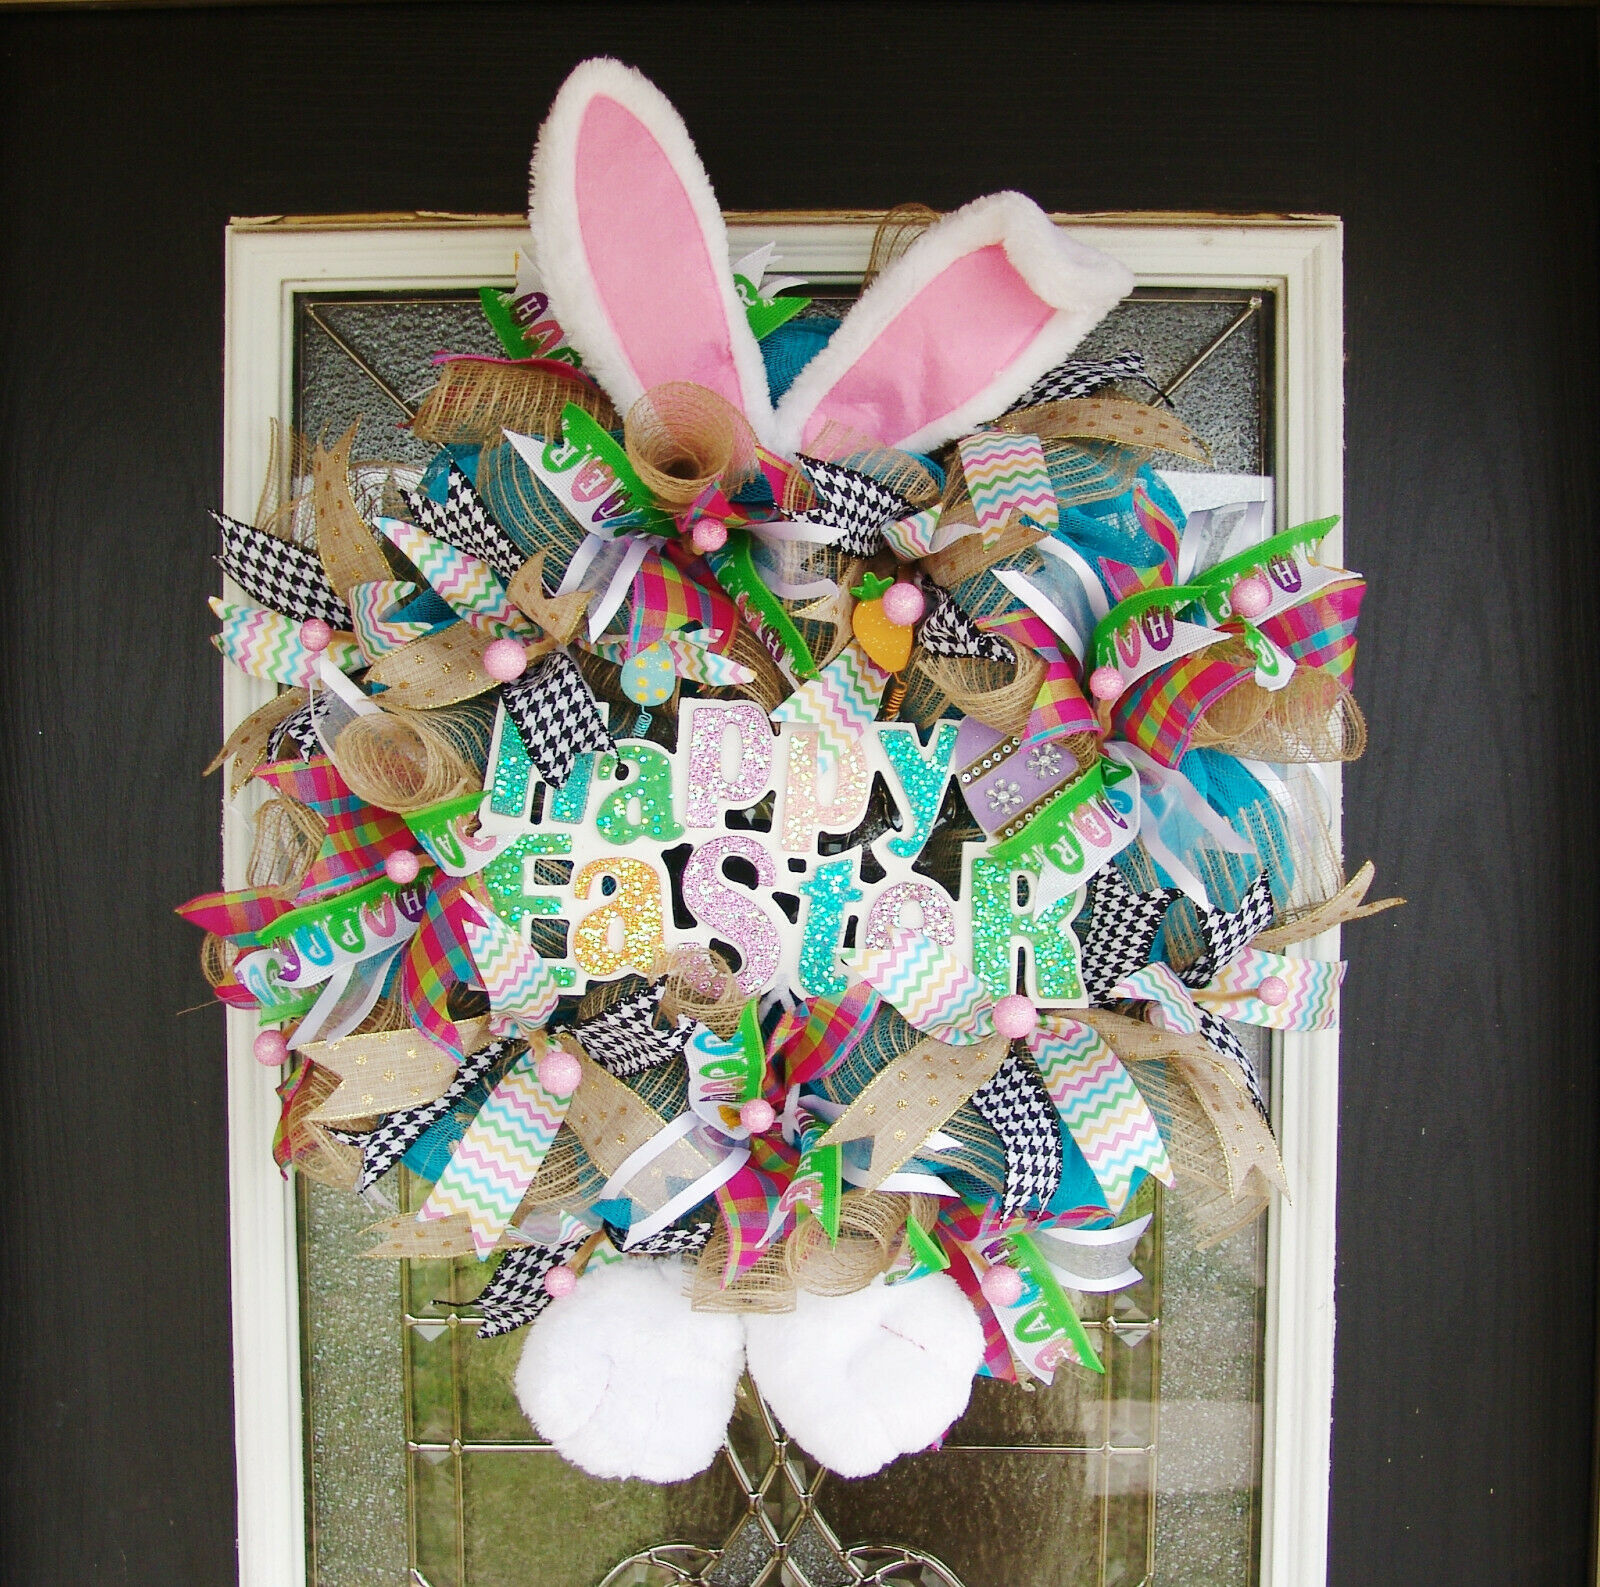 Farbeful Glitter Happy Easter Bunny Ears Feet Sign Front Door Wreath, Whimsical